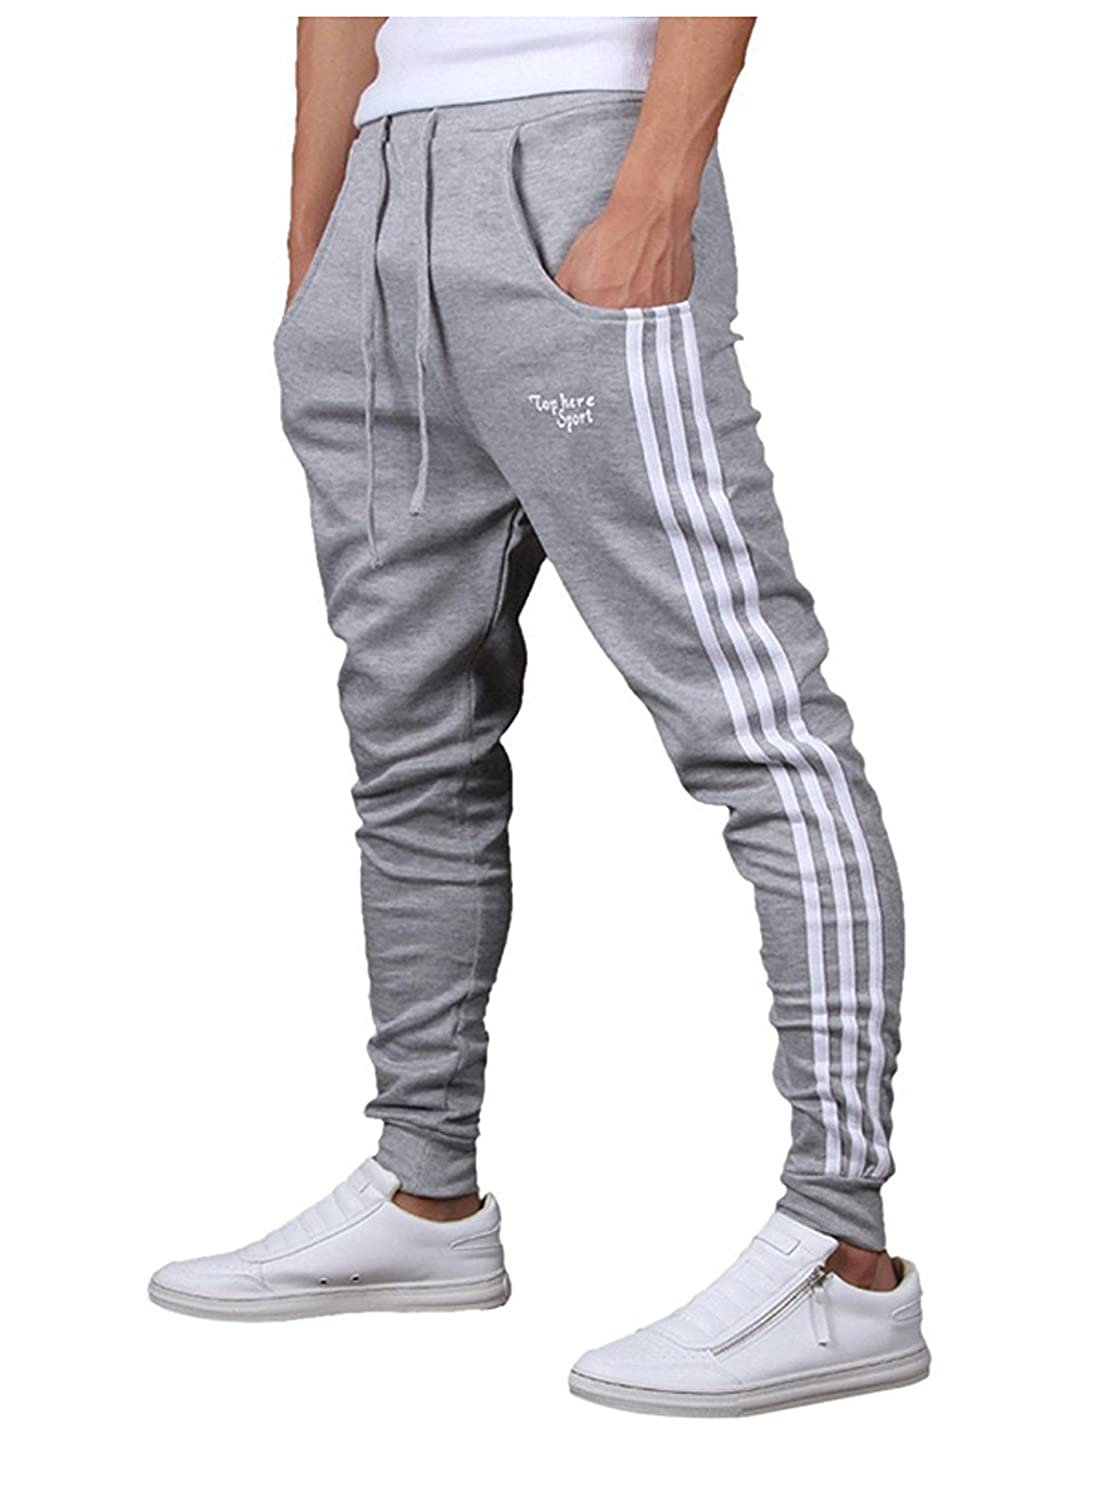 RUA Men's Track Pants Striped Close Bottom Elastic Skinny Gym Joggers Sweatpants